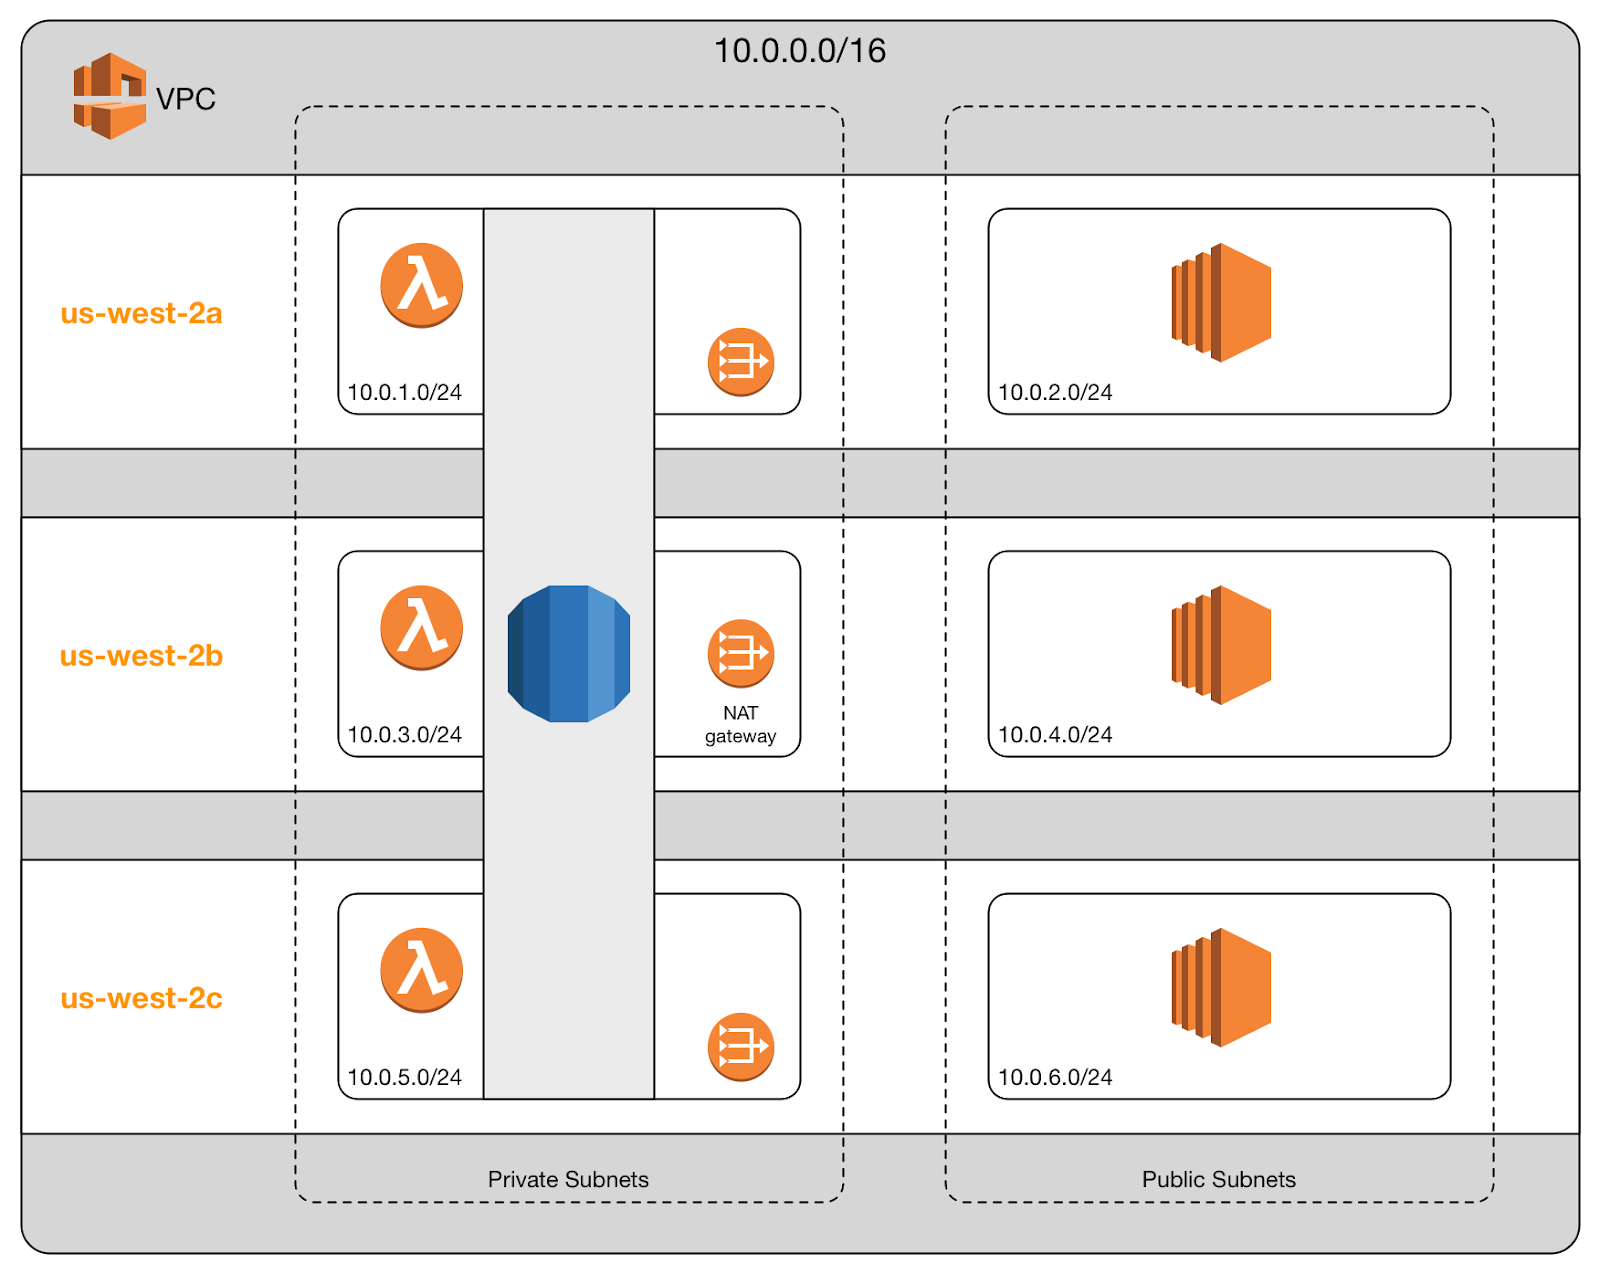 AWS Development: The Dark Art of VPC Networking